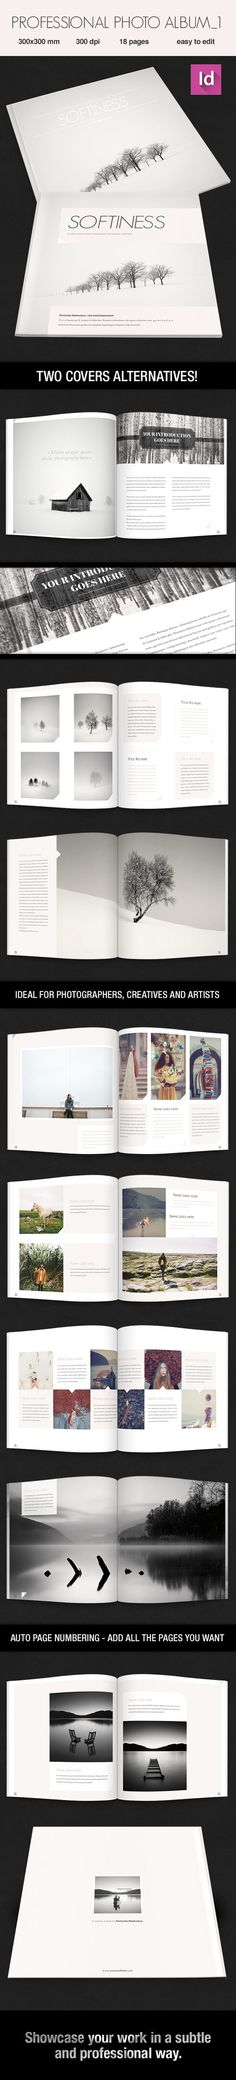 Professional Photo album_1 on Behance